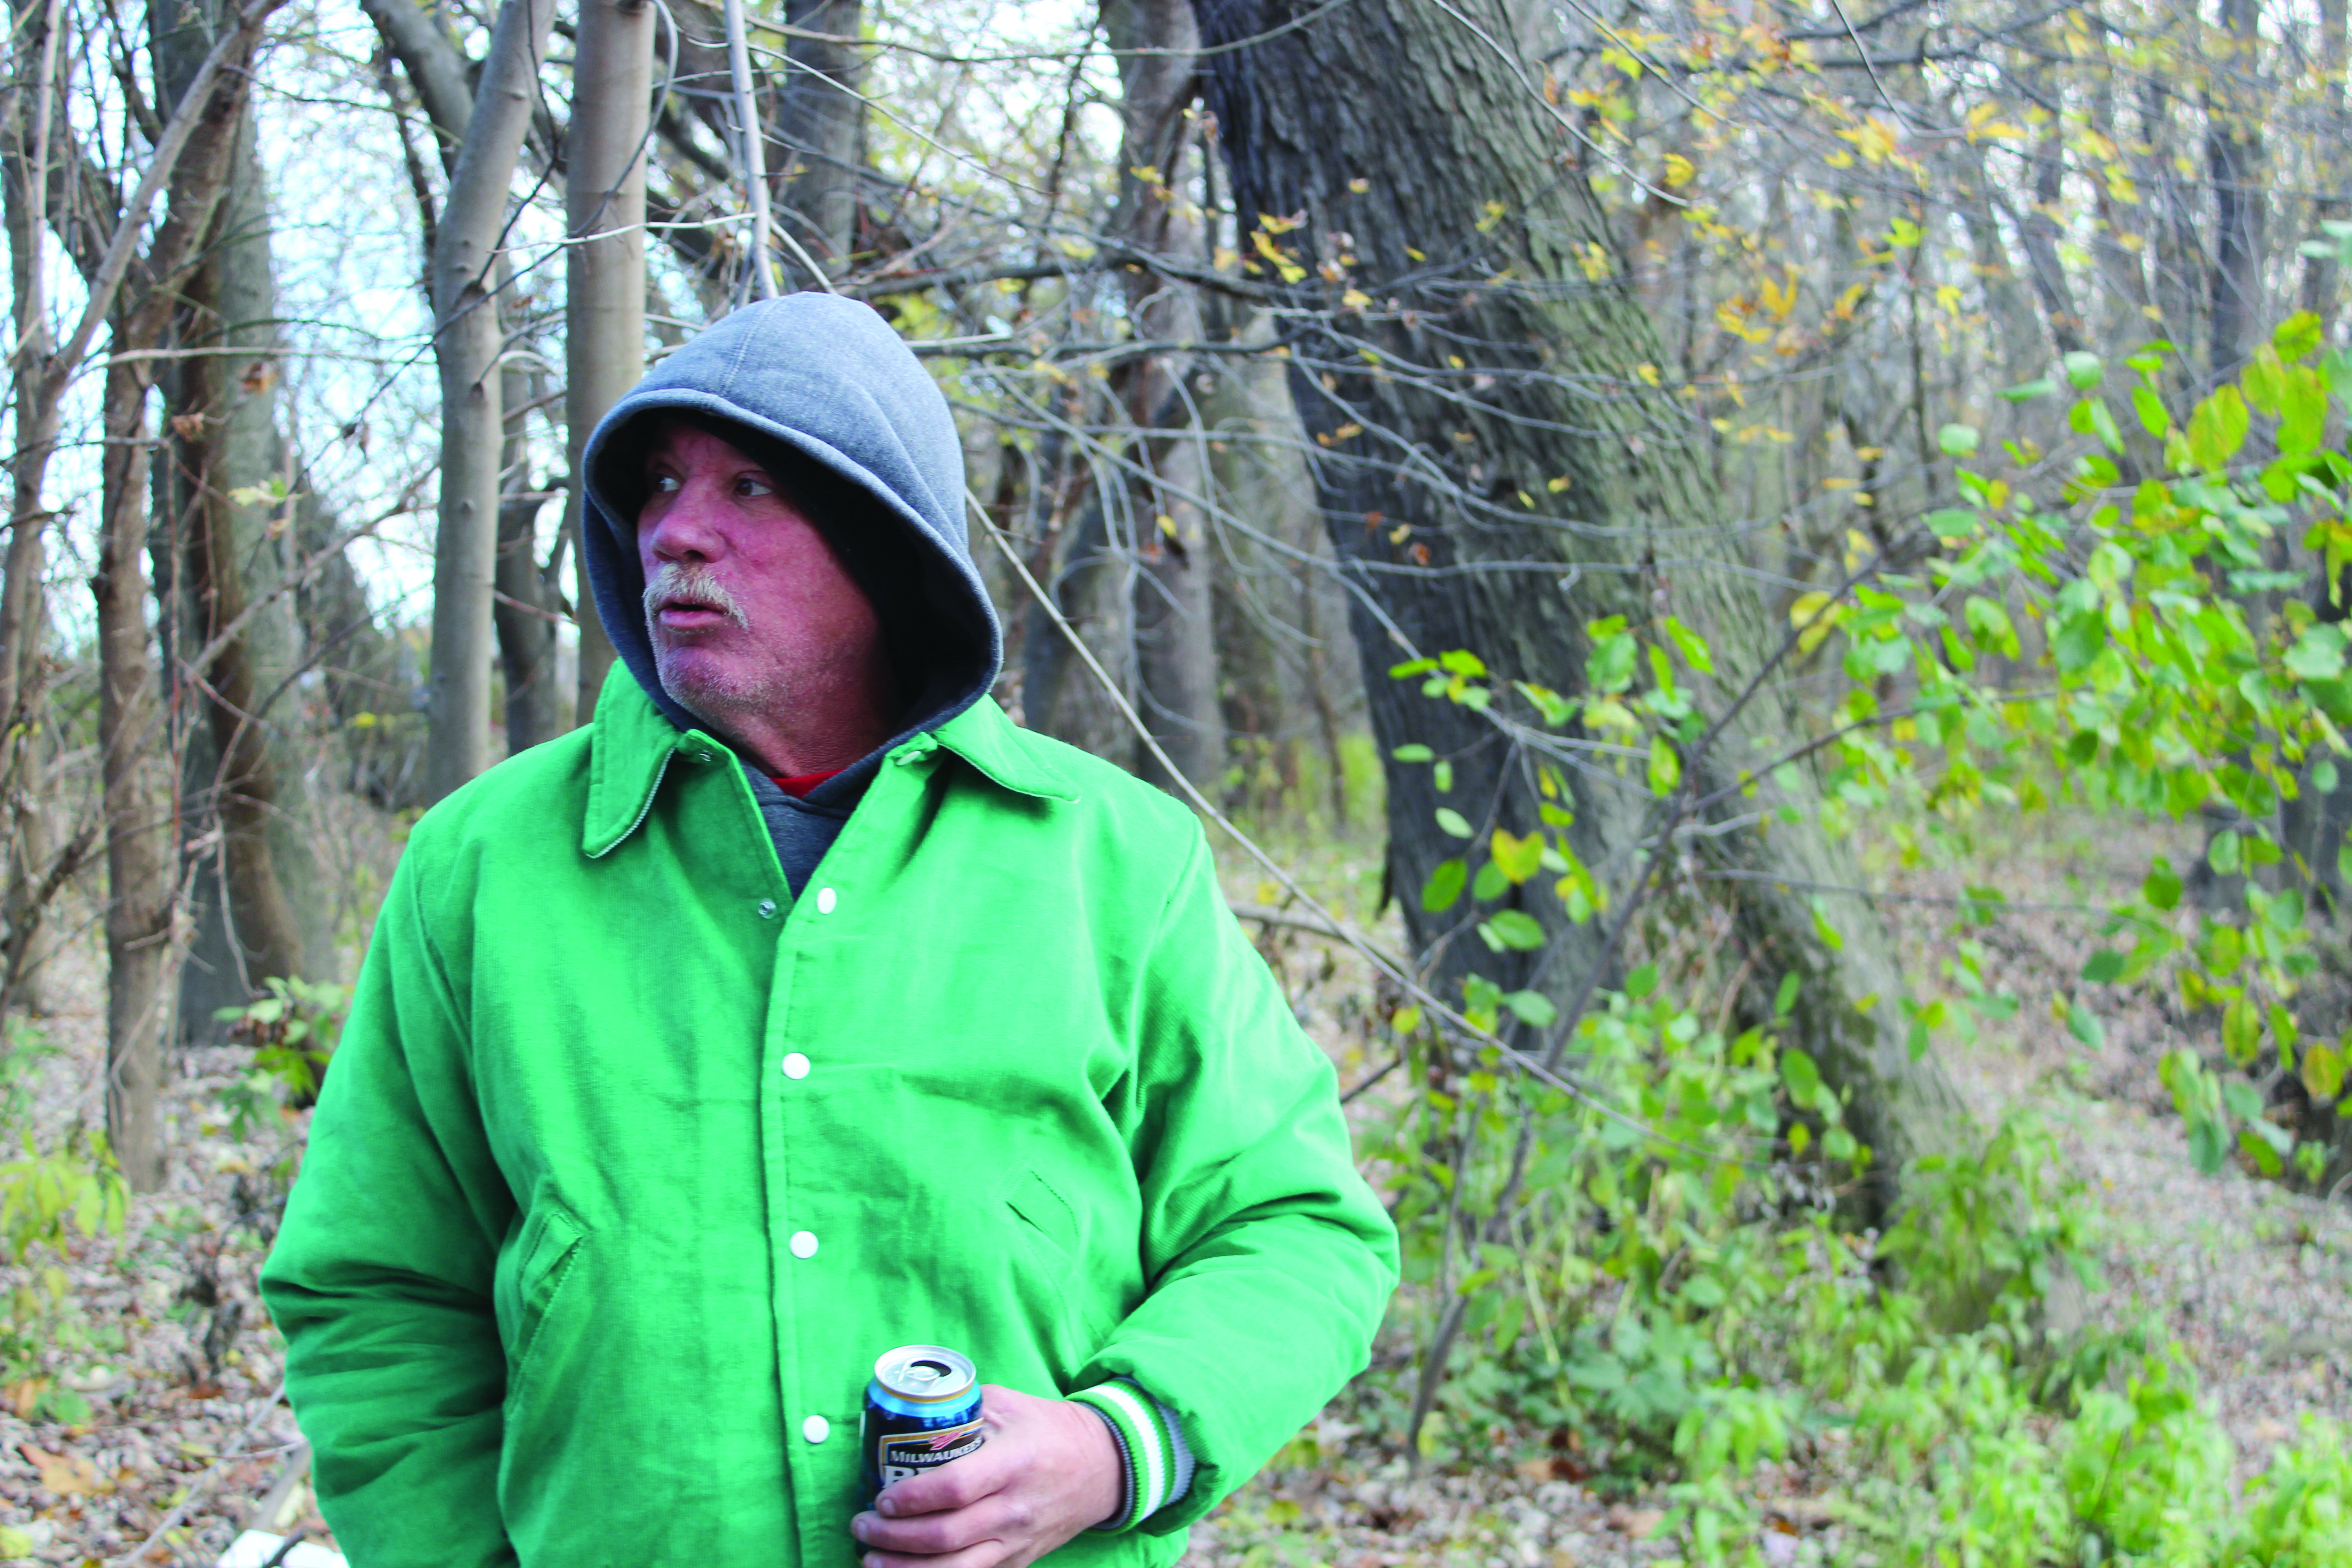 Tony Avery visits what remains of his home on the Mahoning River. The cabin burned to the ground three years ago and has been reclaimed by squatters. Photo by Billy Ludt/ The Jambar.